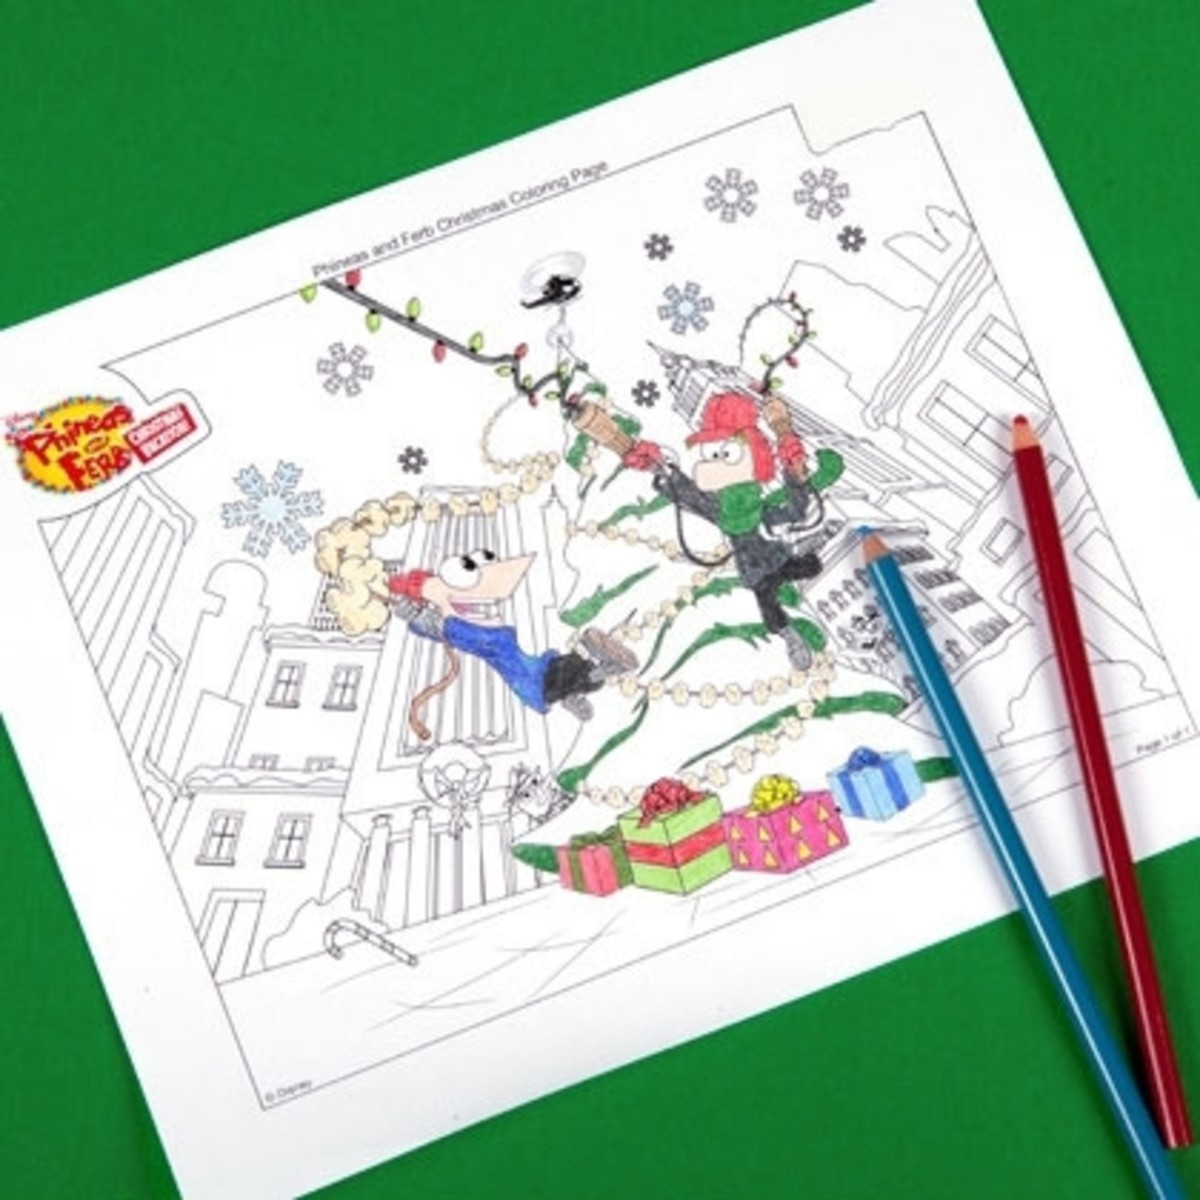 Disney has lots of coloring sheets with a Christmas theme like this Phineas and Ferb one.